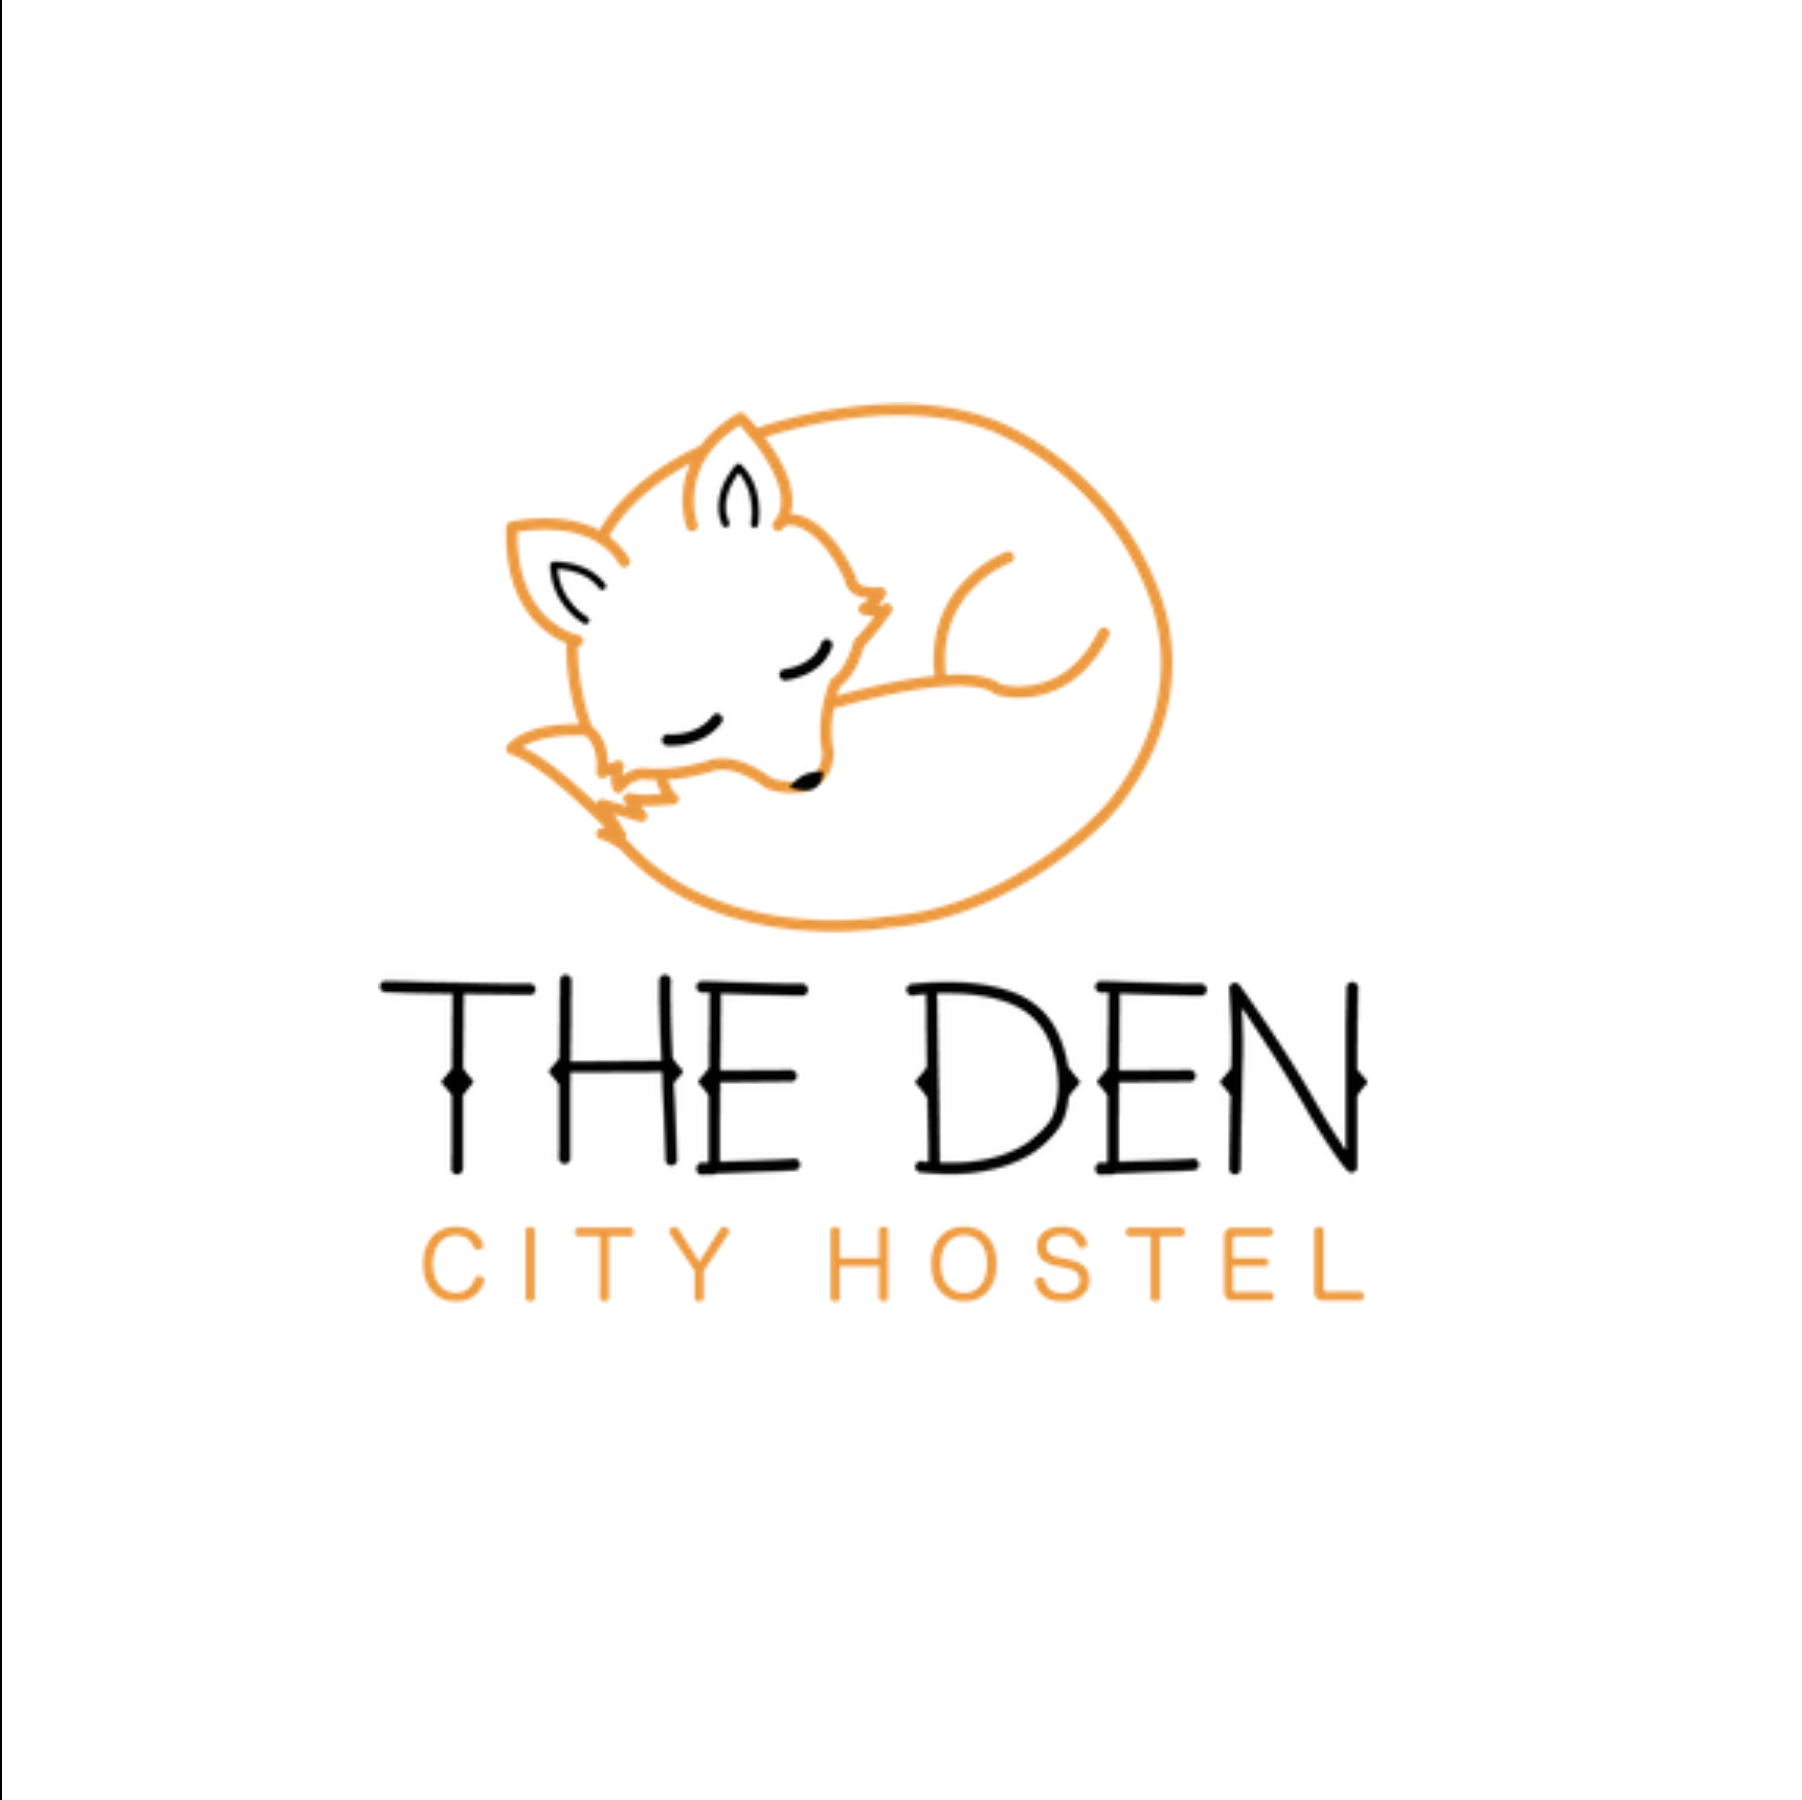 The Den City Hostel